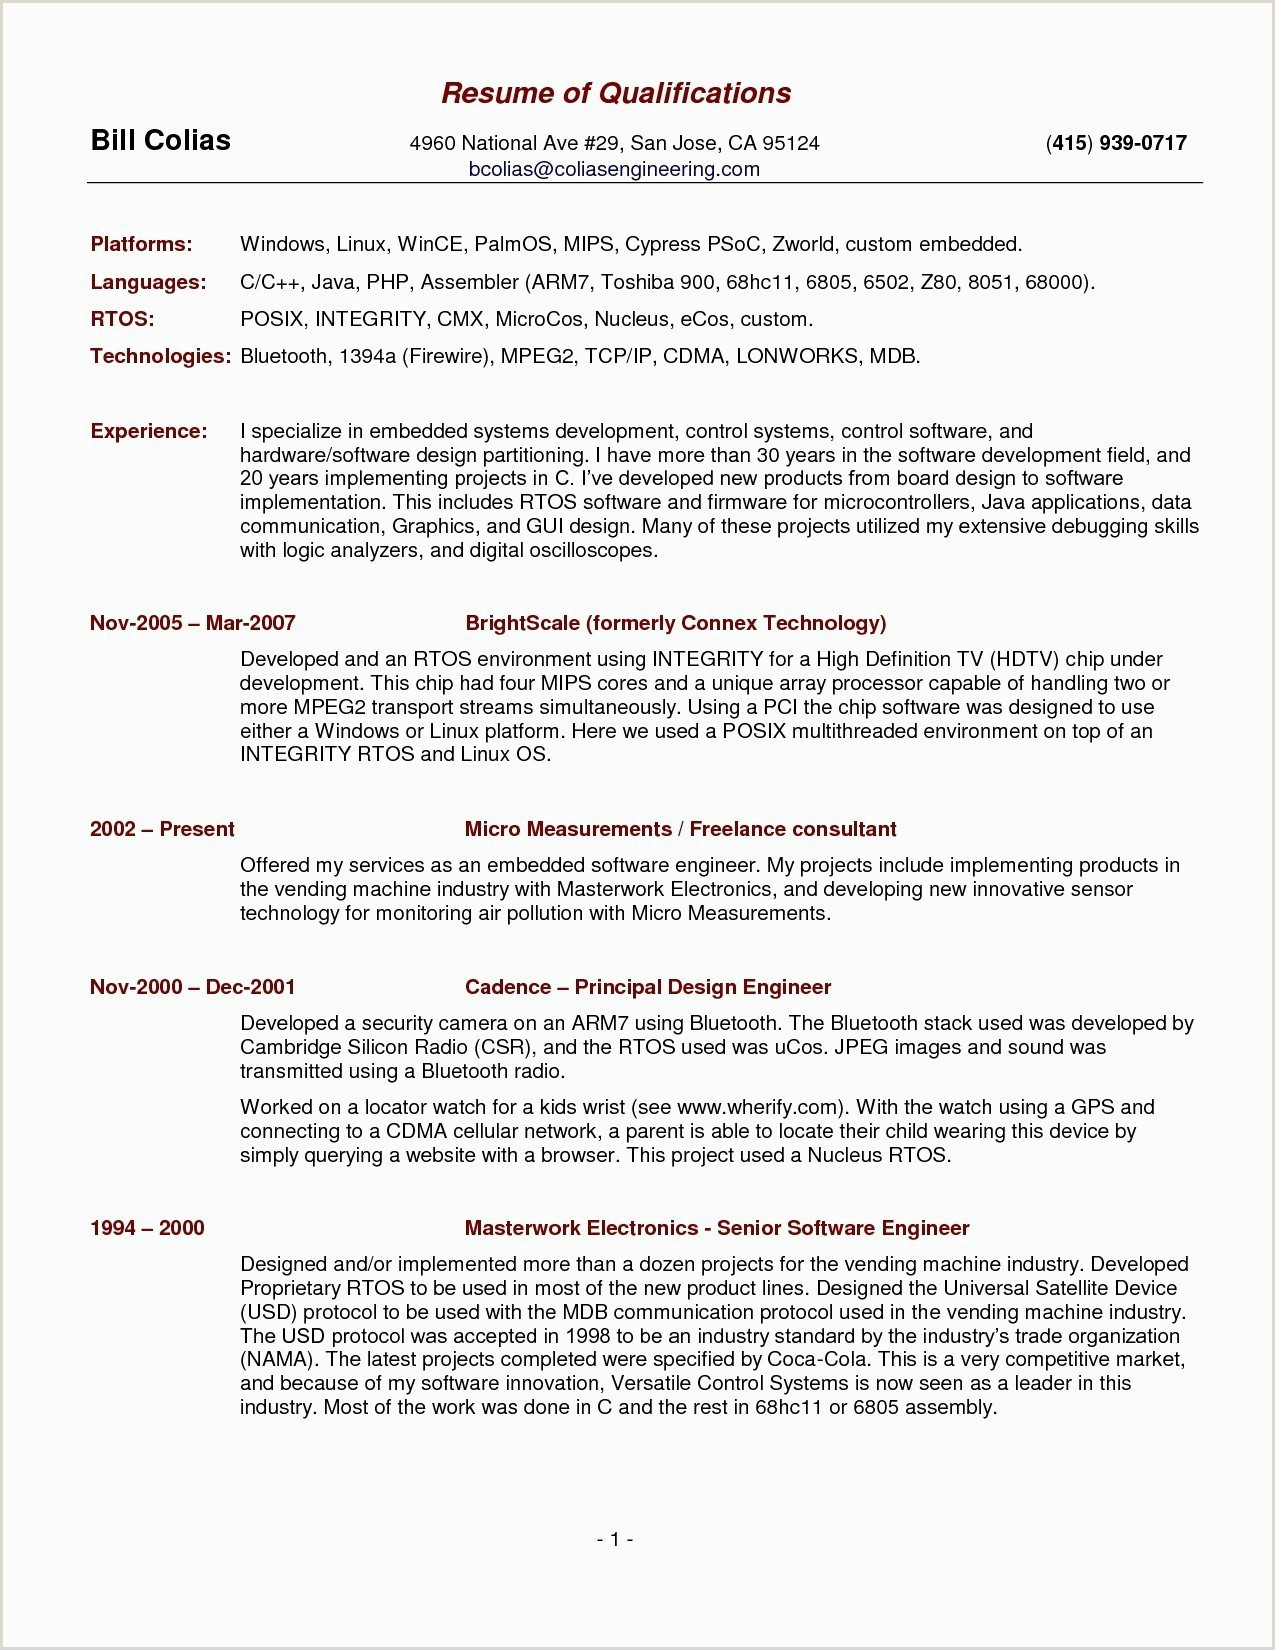 Java Developer Cover Letter Cover Letter software Developer Economic Development